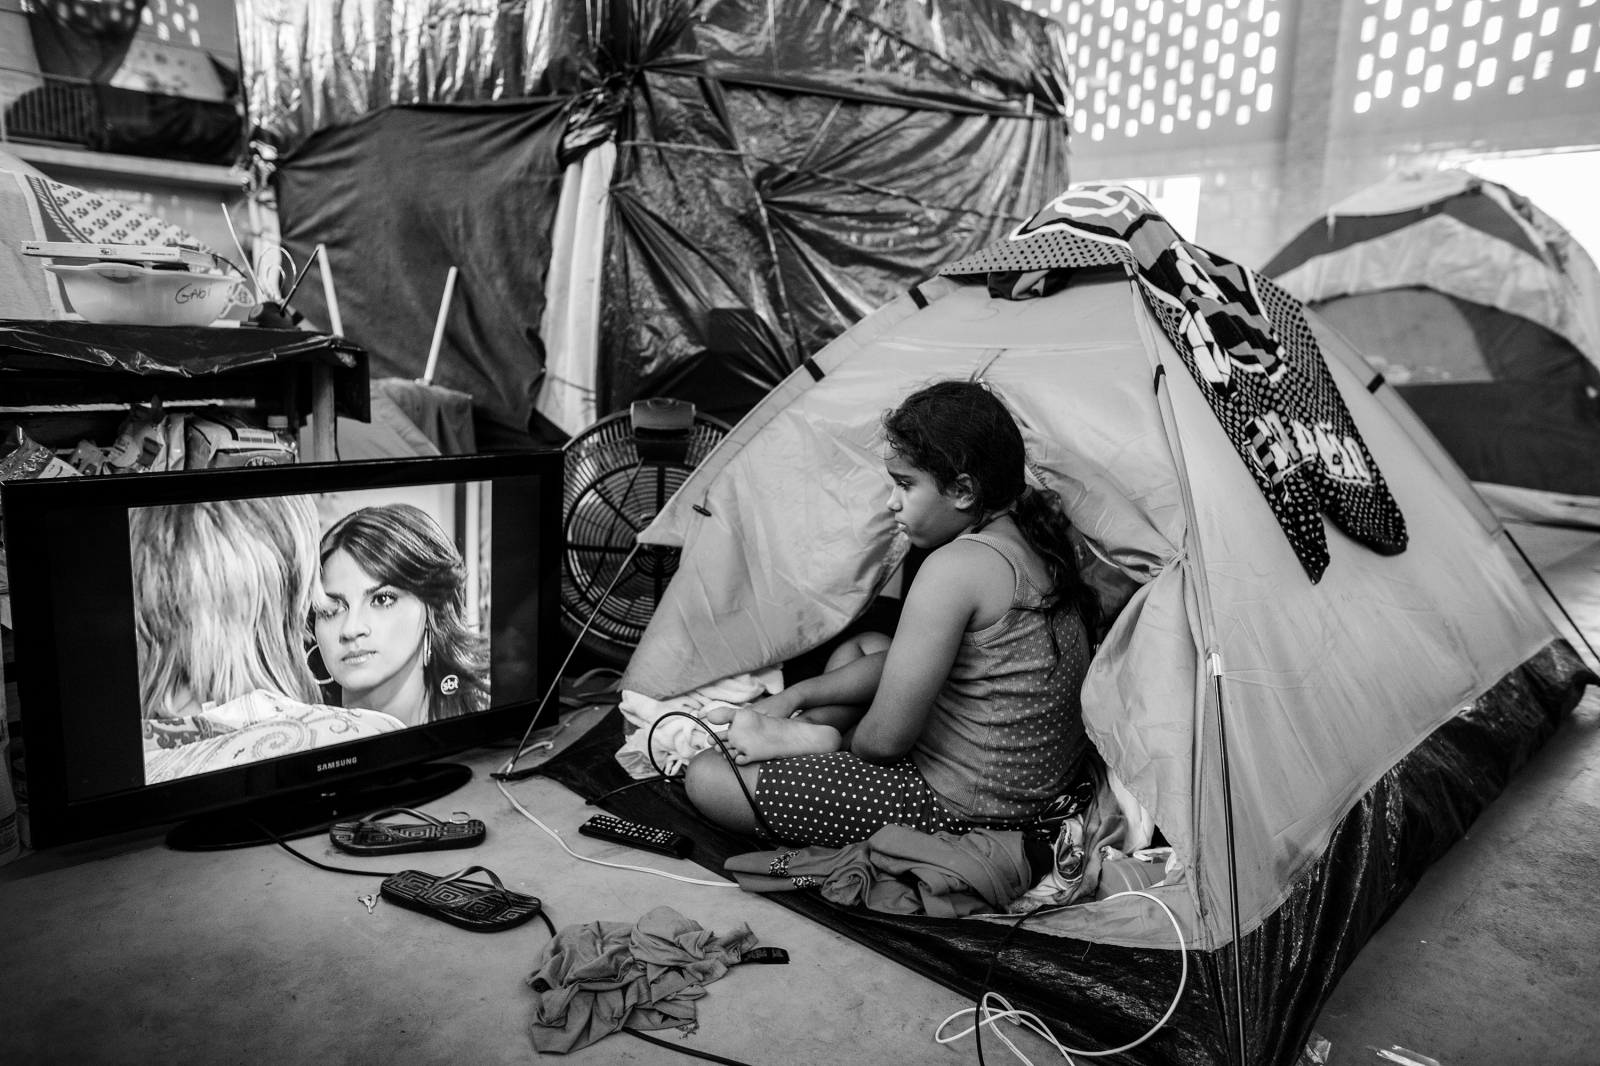 A young girl living in a tent, inside of a catholic church on Governor's island watches a telenovela on TV. A group of squatters that occupied an abandoned factory were evicted and the church offered temporary shelter where they could live in tents. June 2014.